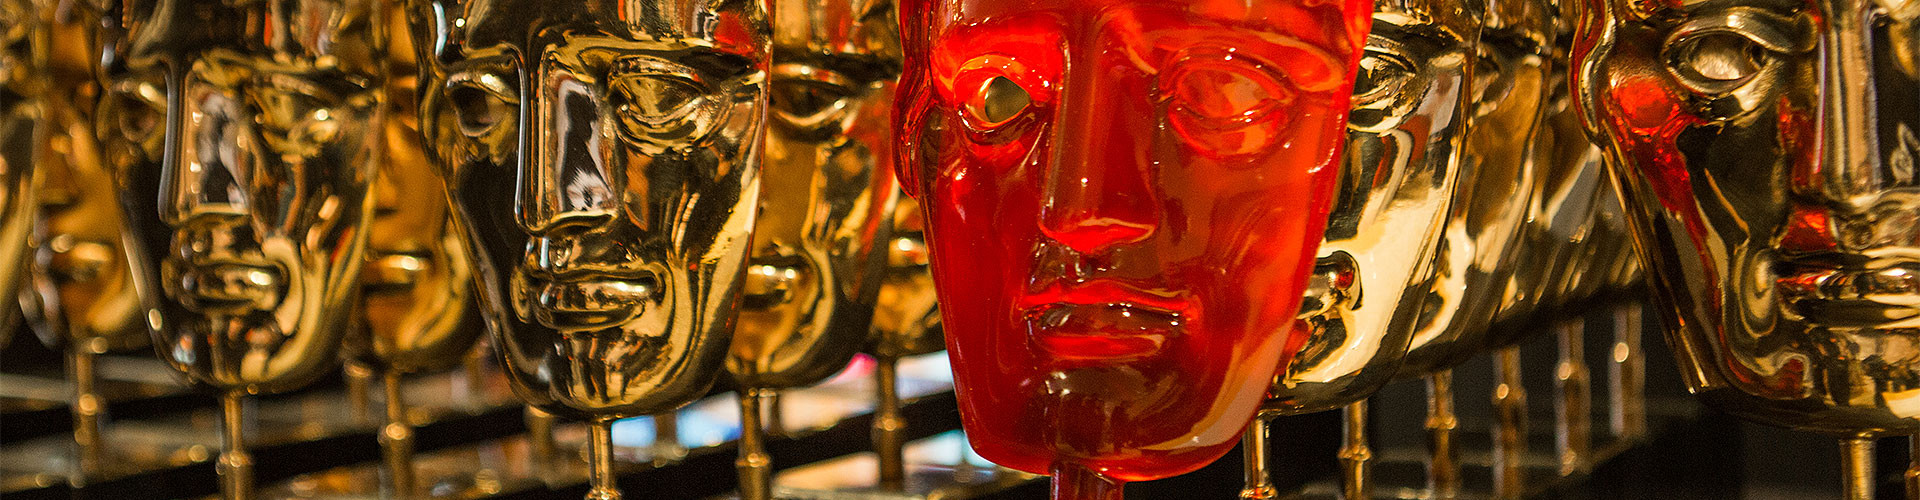 baftas-tv-awards-2017-banner-1920x520.jpg